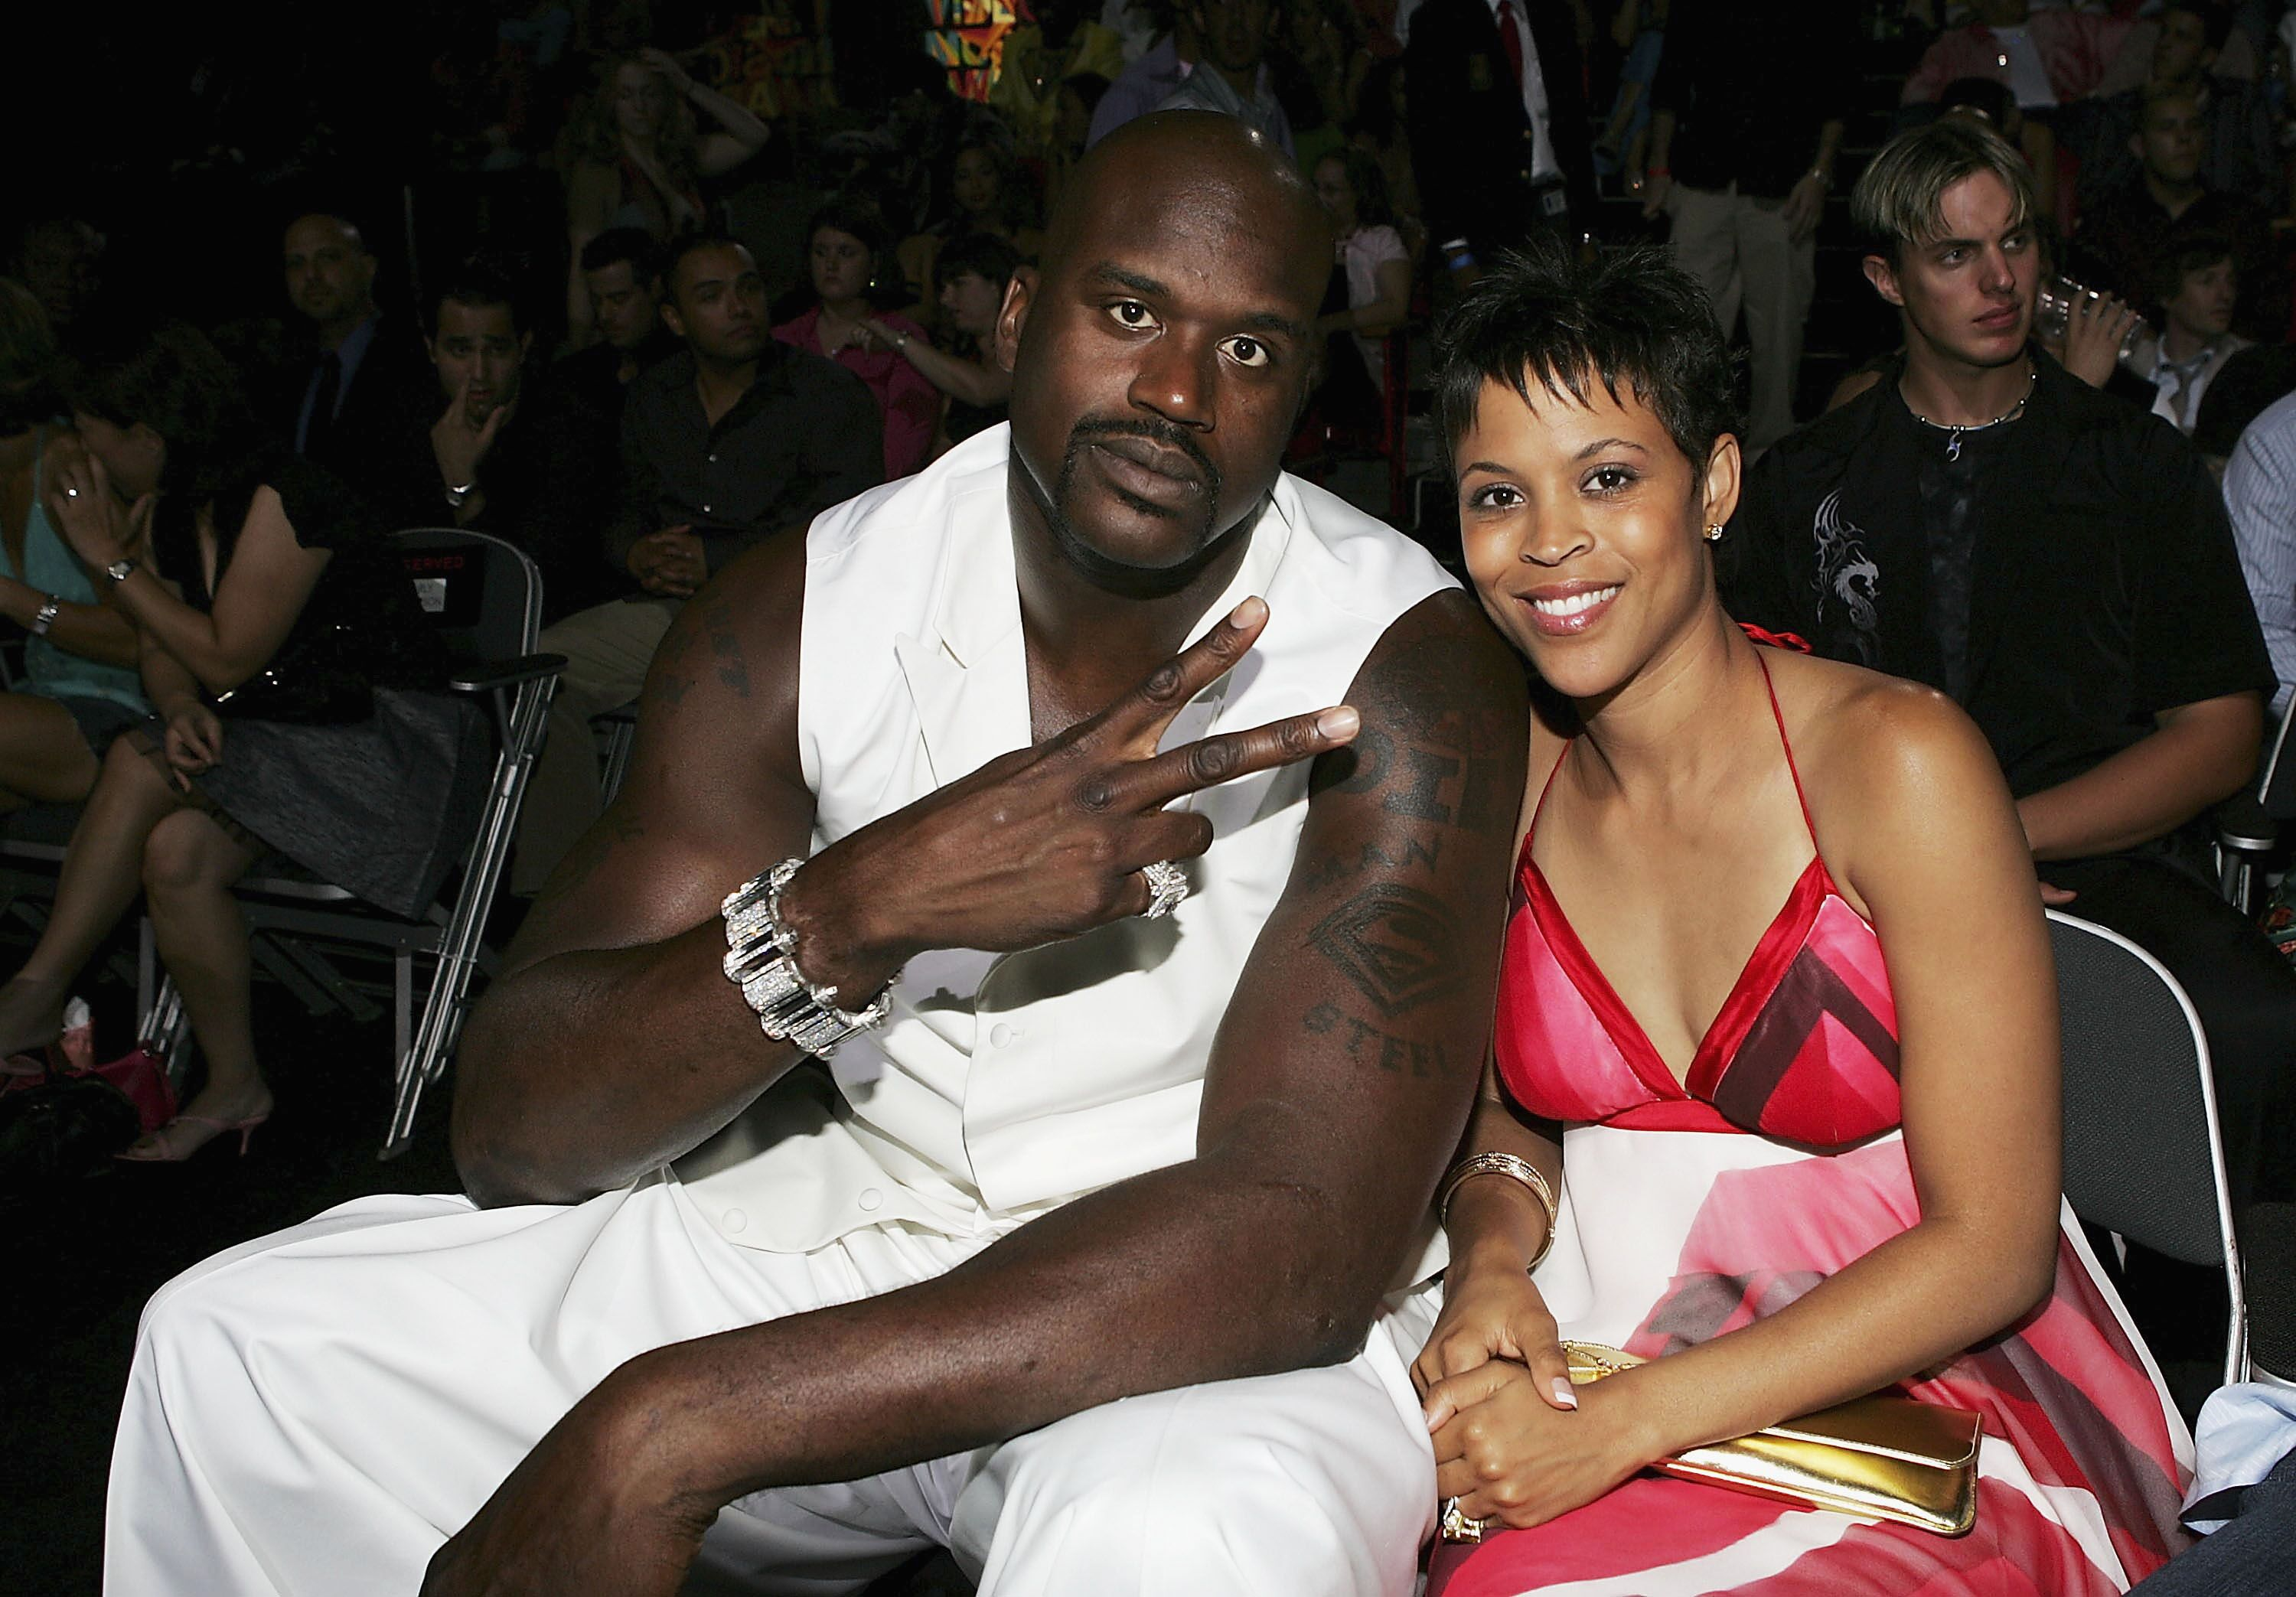 Shaquille O'Neal et son épouse Shaunie O'Neal aux MTV Video Music Awards 2004. | Source : Getty Images